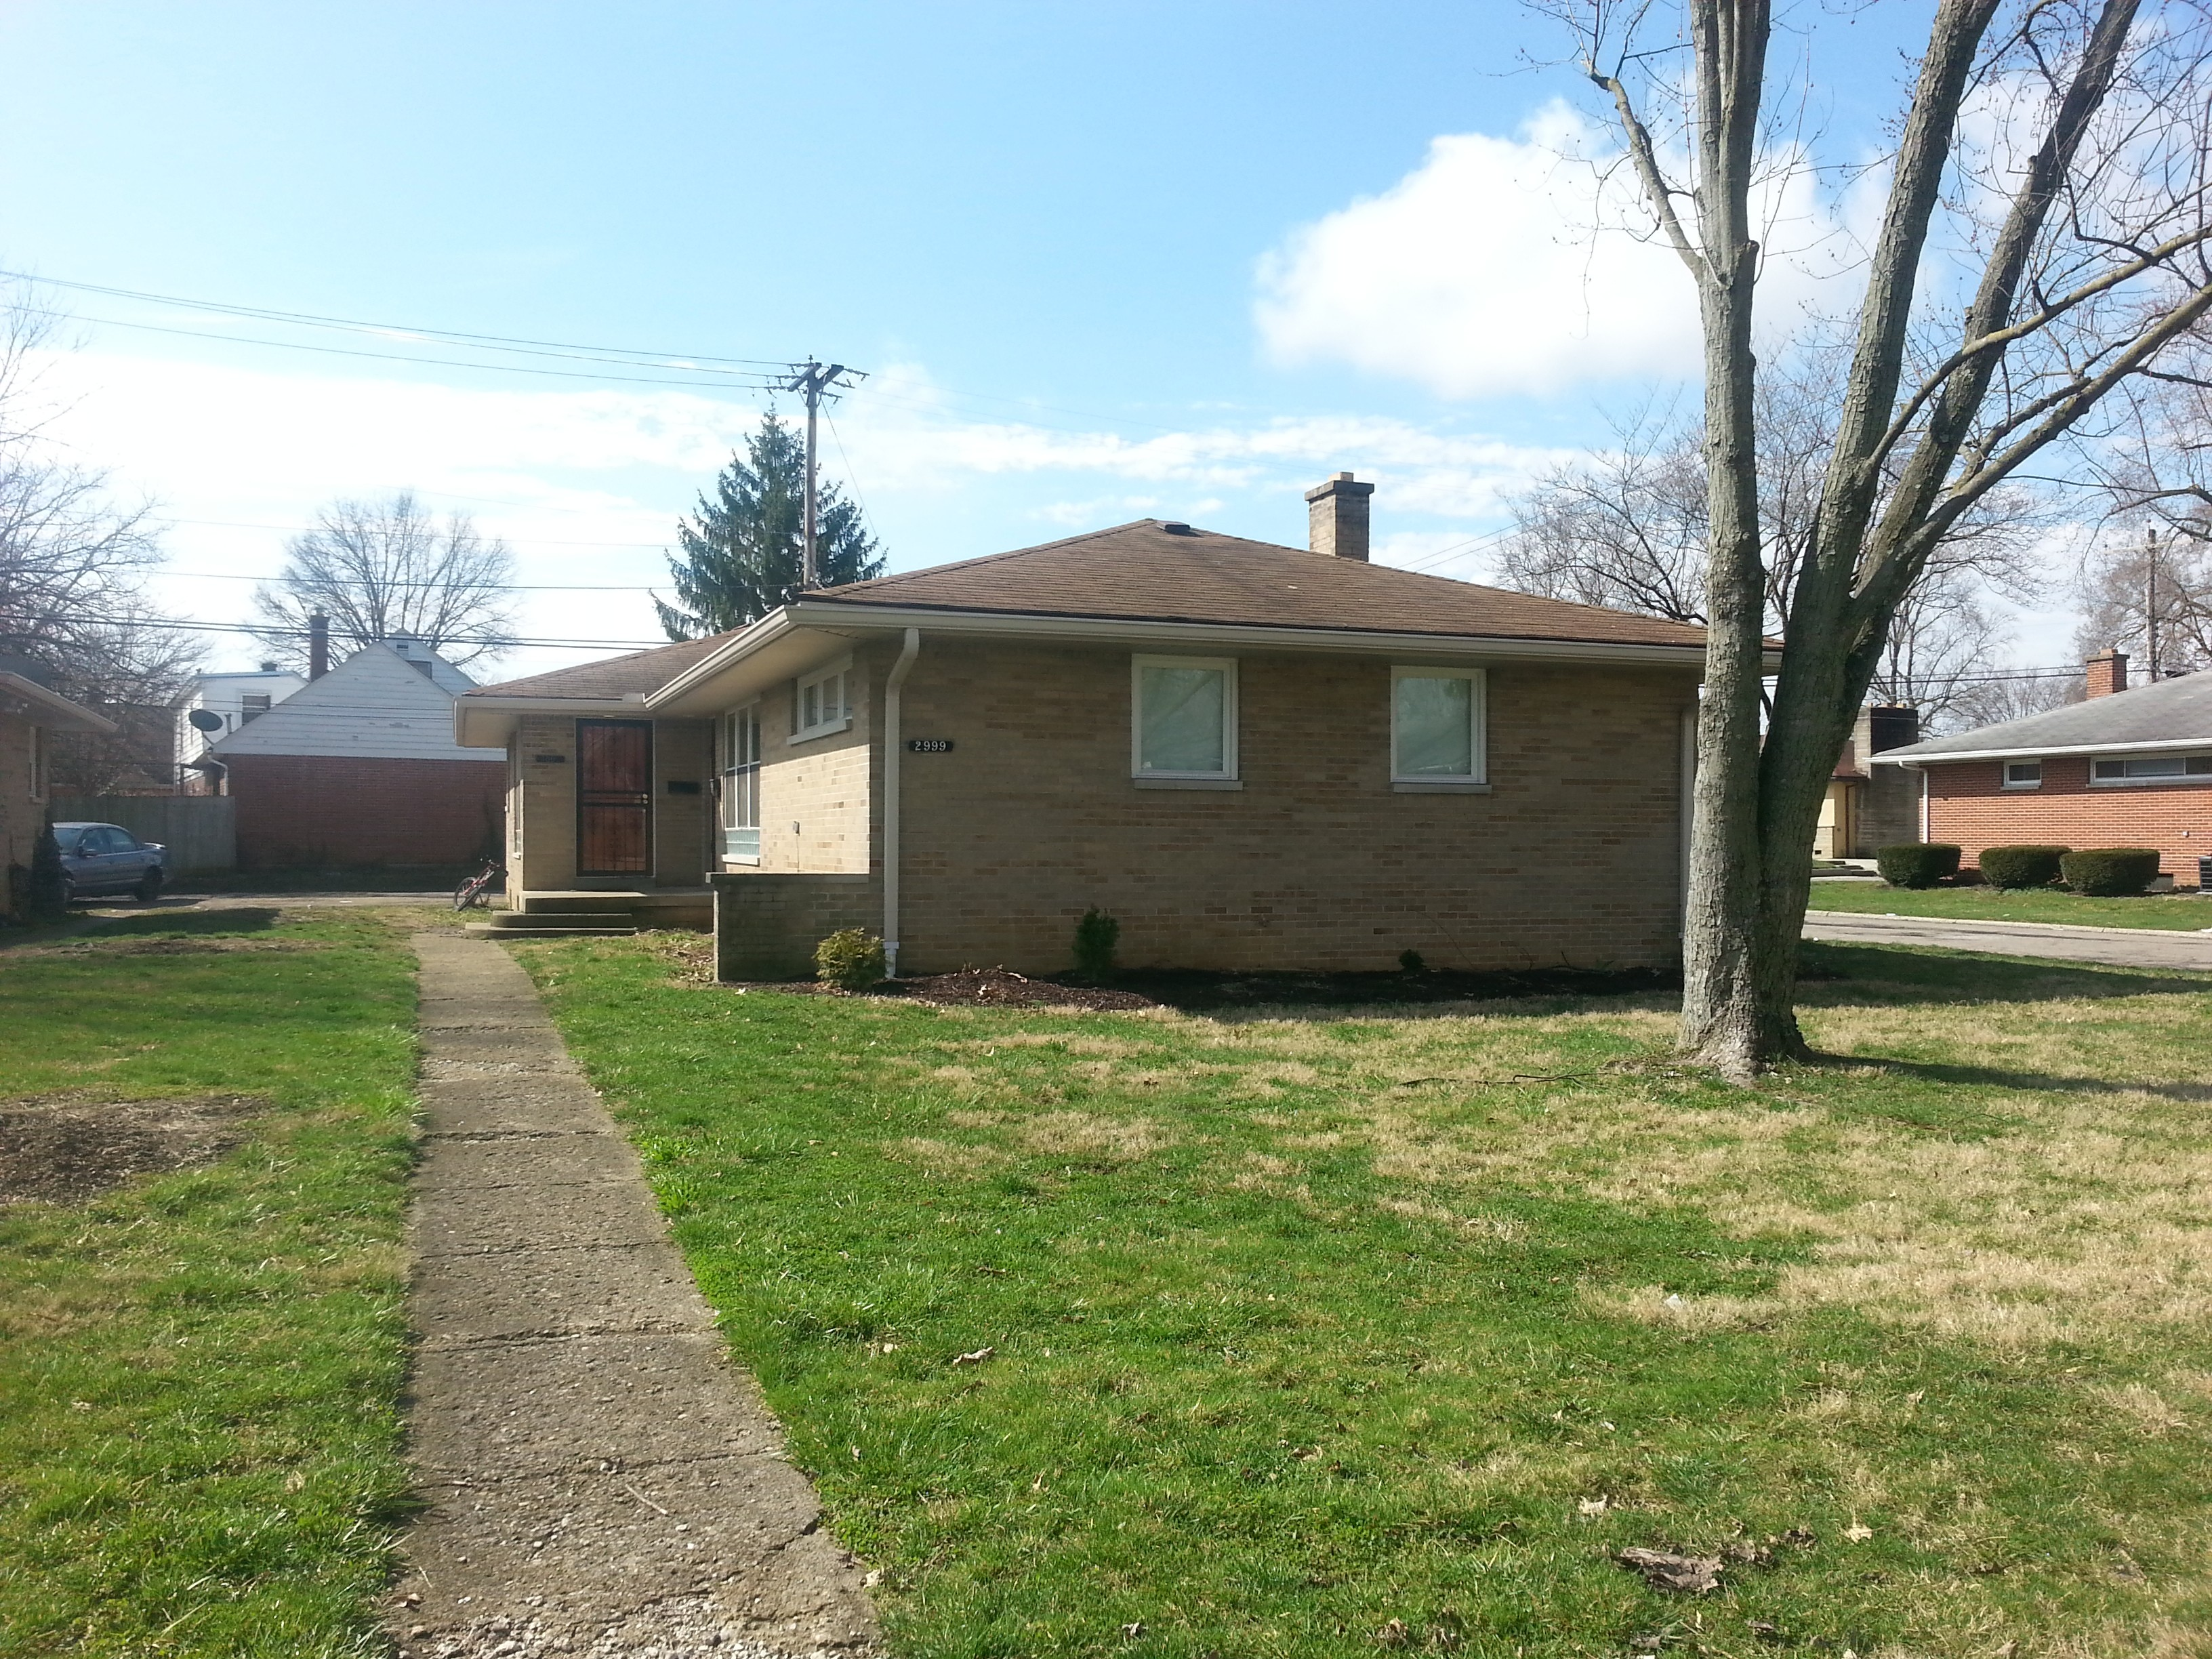 3001 Brownlee Ave Columbus Oh 43209 2 Bedroom Apartment For Rent For 750 Month Zumper